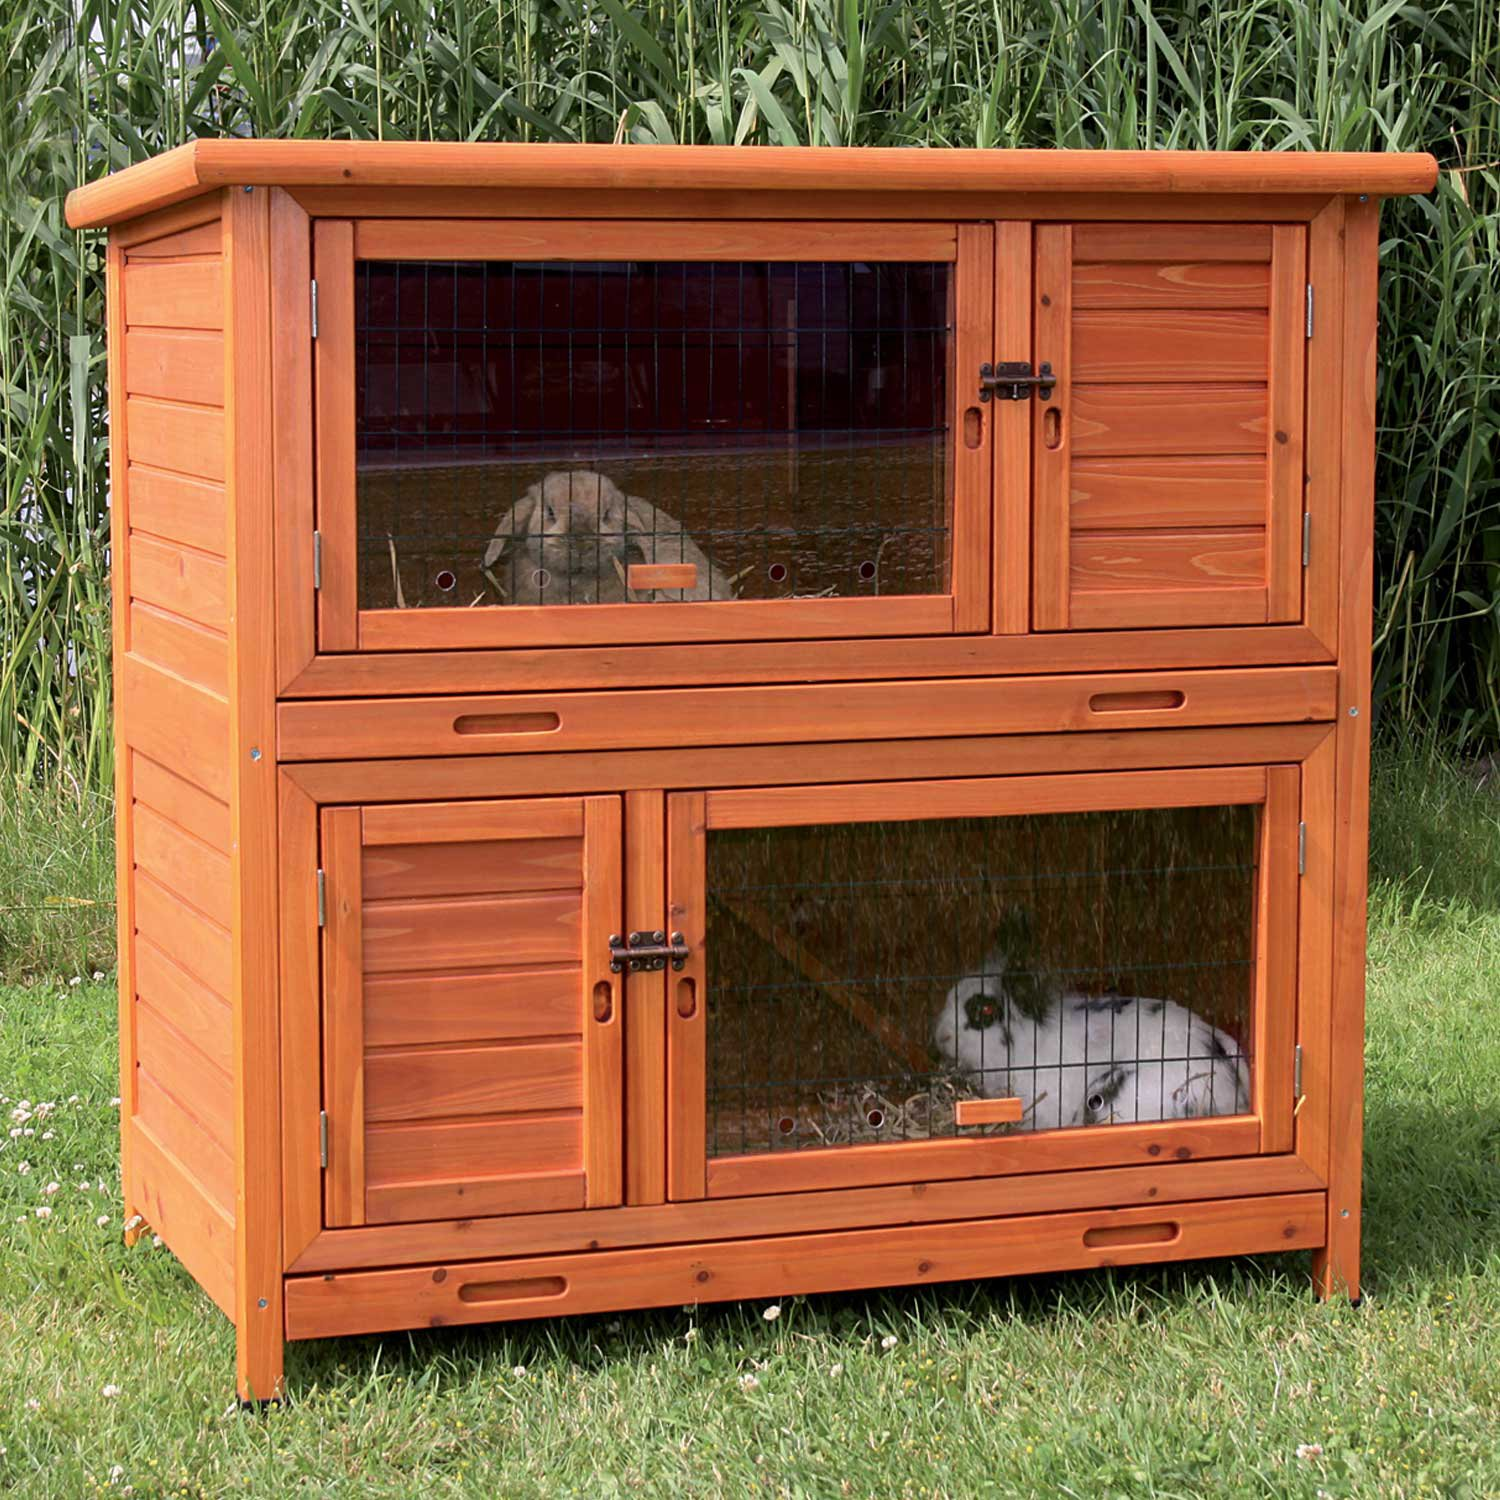 trixie natura insulated two story rabbit hutch petco. Black Bedroom Furniture Sets. Home Design Ideas